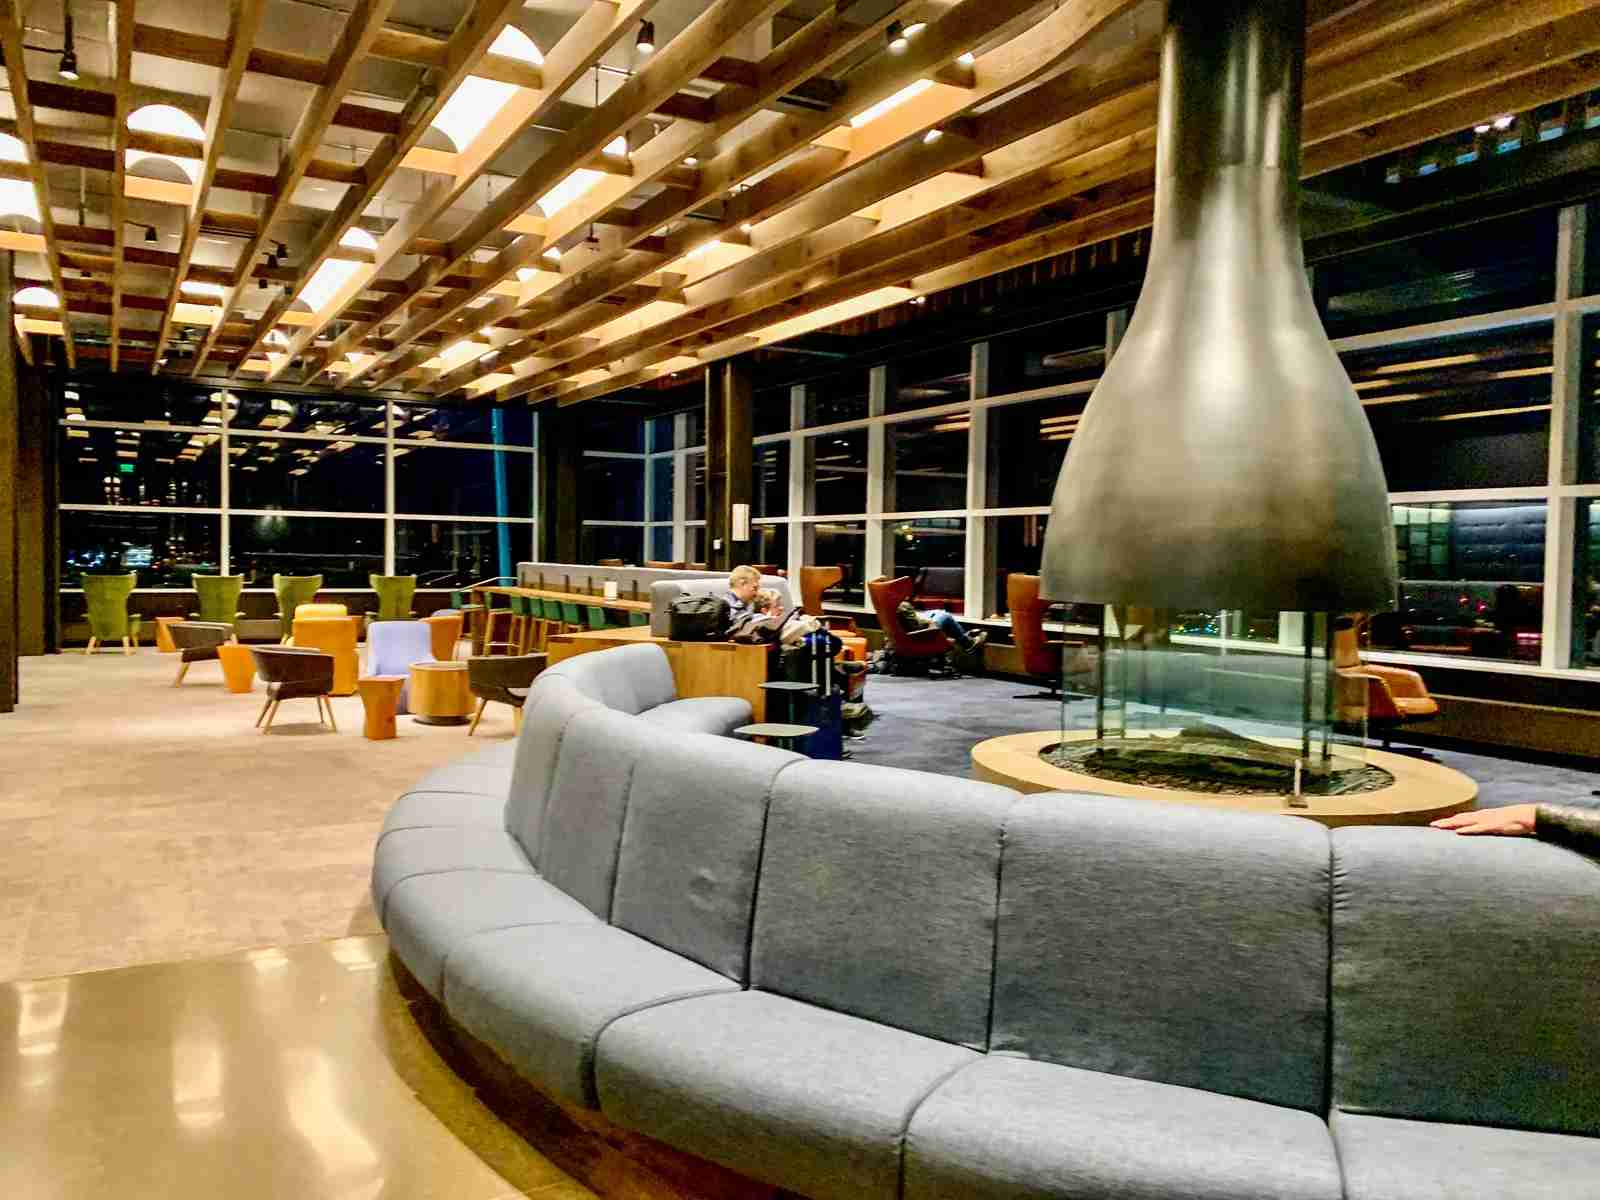 Alaska Airlines lounge in Seattle. (Photo by Clint Henderson / The Points Guy)